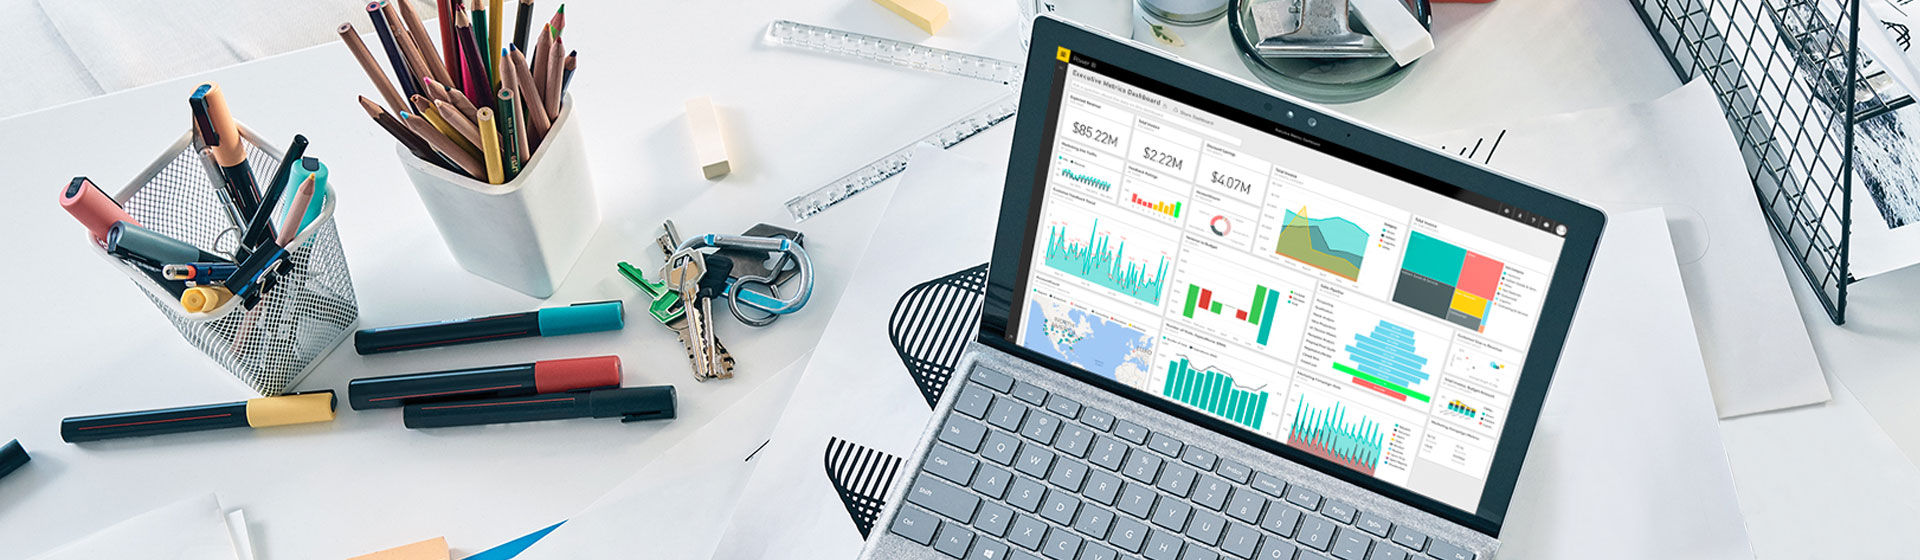 Empty desk with desktop monitor showing Power BI